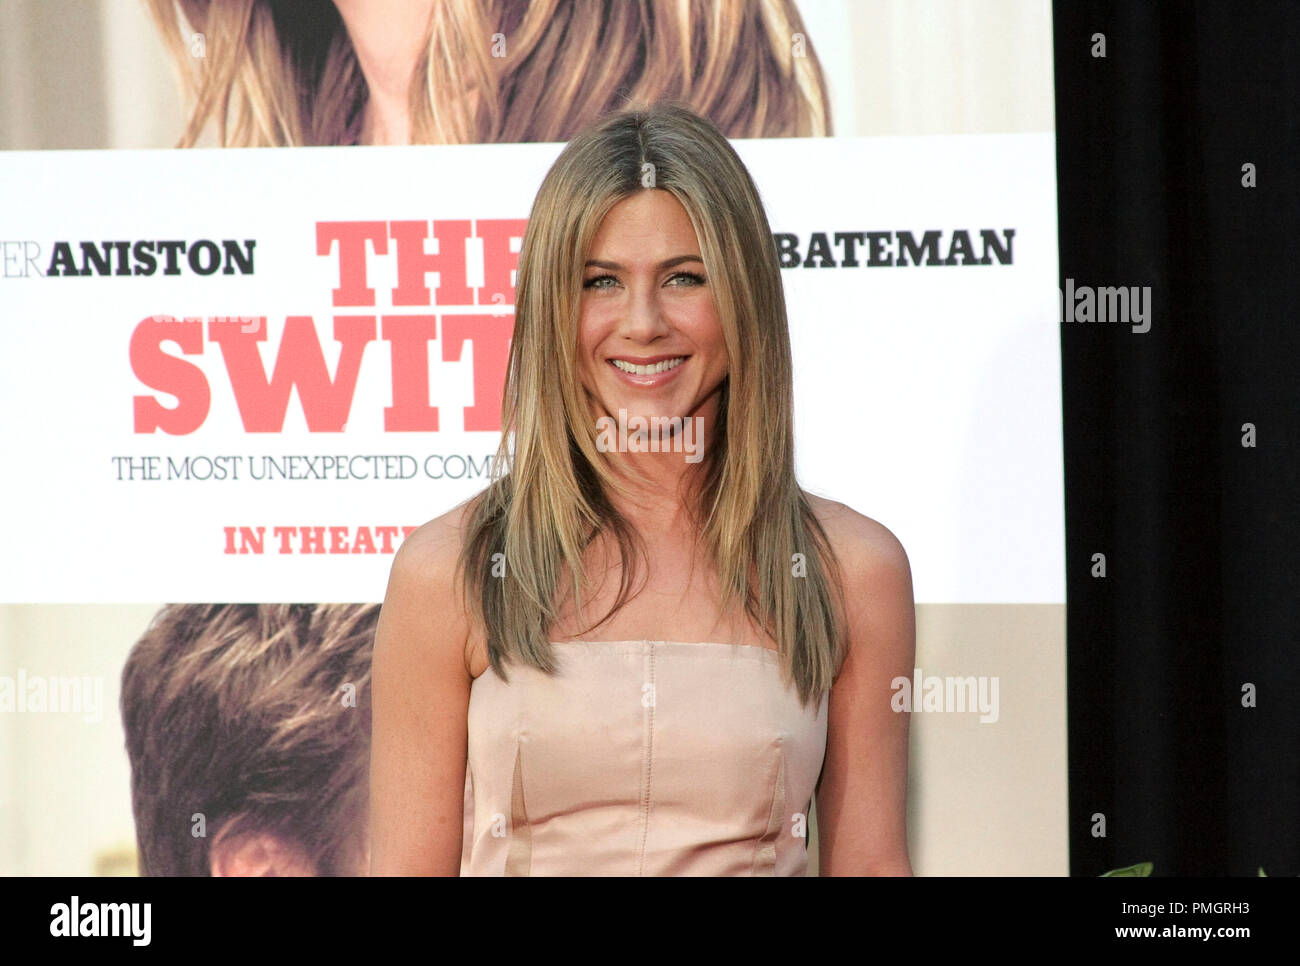 Jennifer Aniston at the World Premiere of Miramax Films and Mandate Pictures 'The Switch'. Arrivals held at The Arclight Theatre in Hollywood, CA. August 16, 2010. Photo by: Richard Chavez / PictureLux File Reference # 30417_057RAC   For Editorial Use Only -  All Rights Reserved - Stock Image